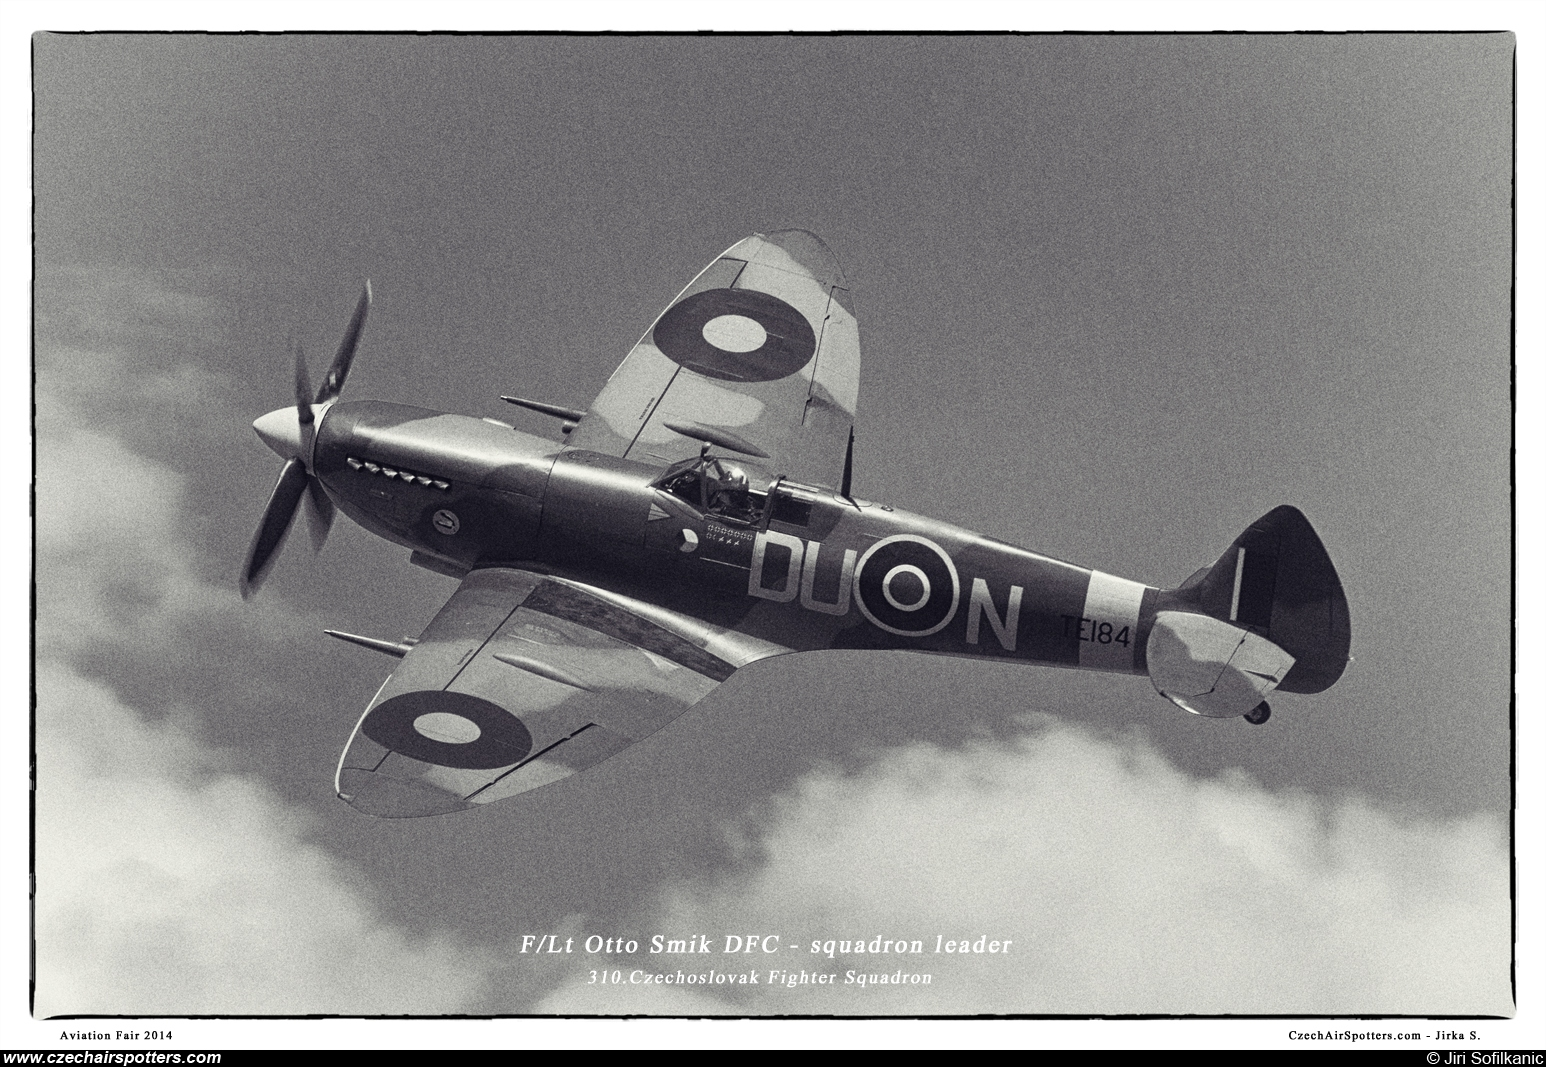 Old Flying Machine Company – Supermarine Spitfire Mk XVIE (type 361) DU-N/TE184